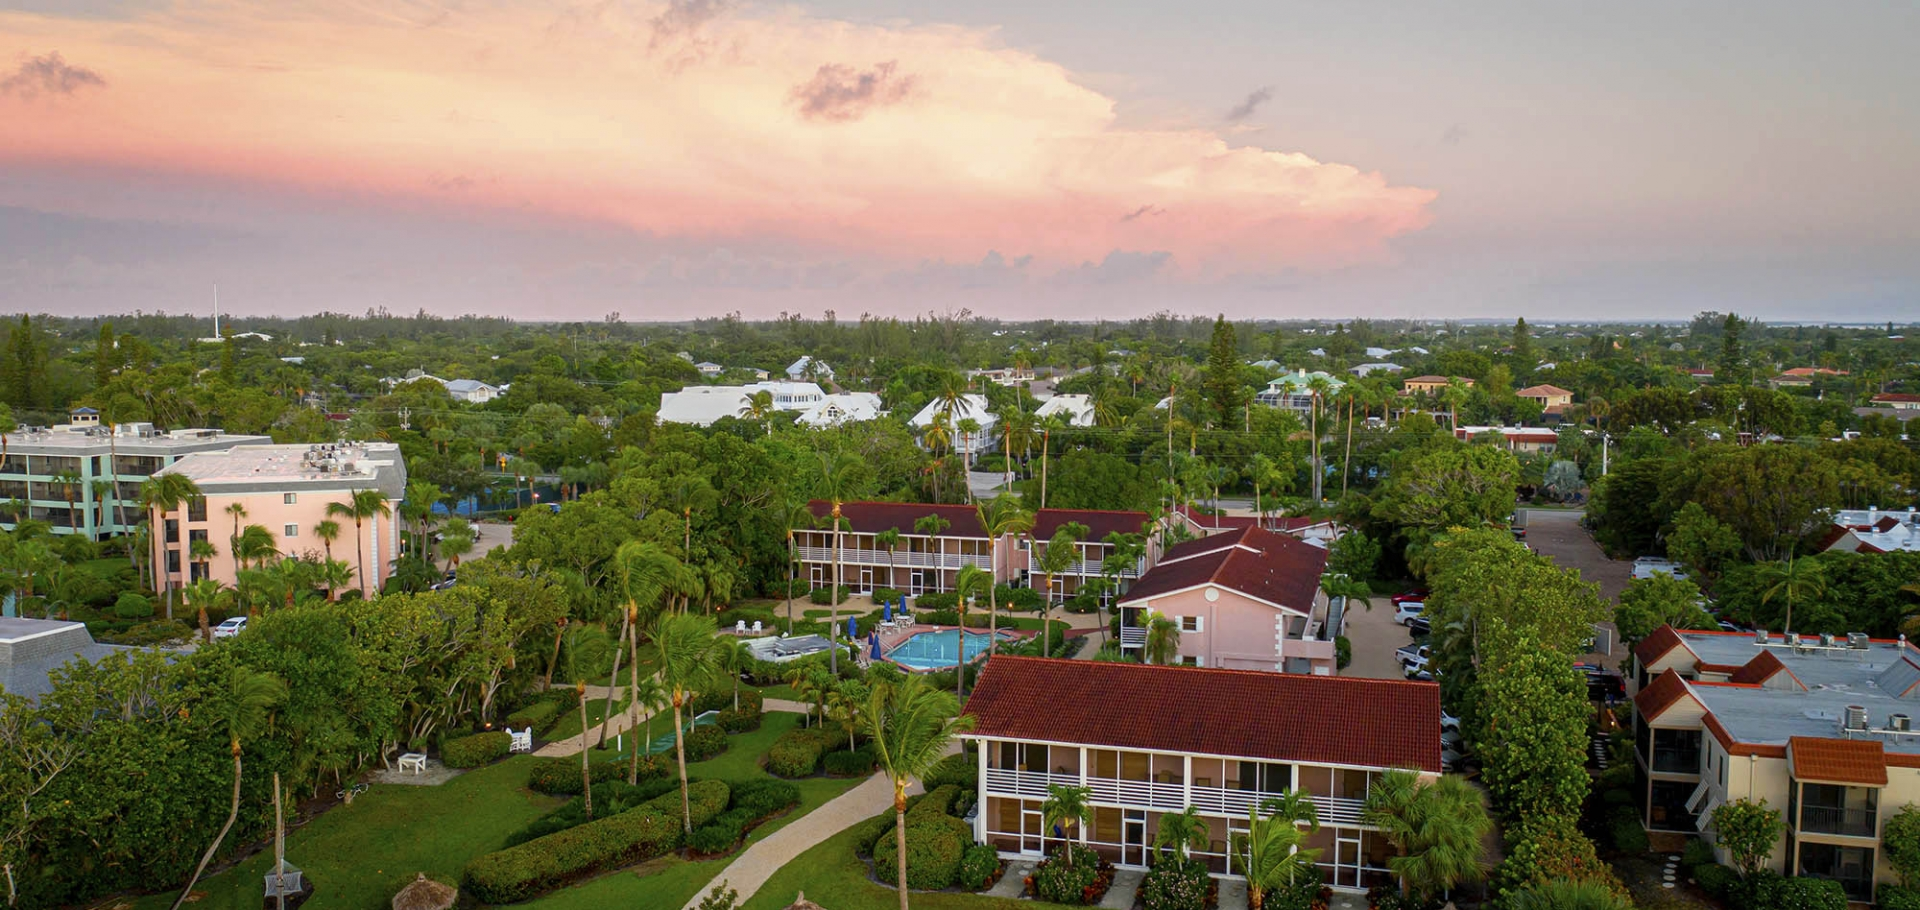 Aerial view of Sanibel's Song of the Sea Inn, a top-rated Sanibel Island resort